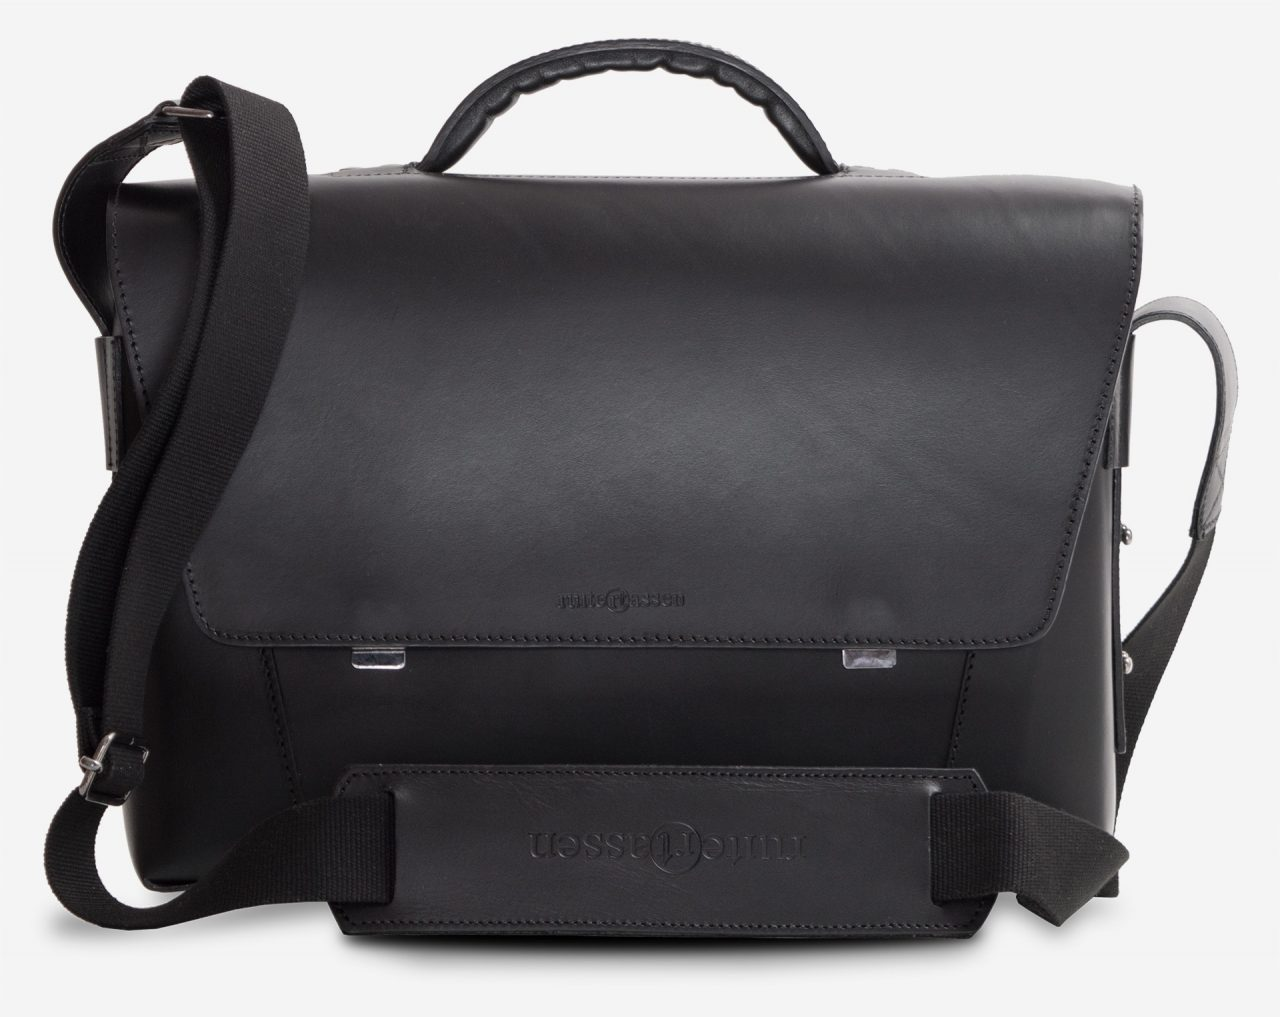 Front view of the black vegetable-tanned leather briefcase bag with laptop pocket.